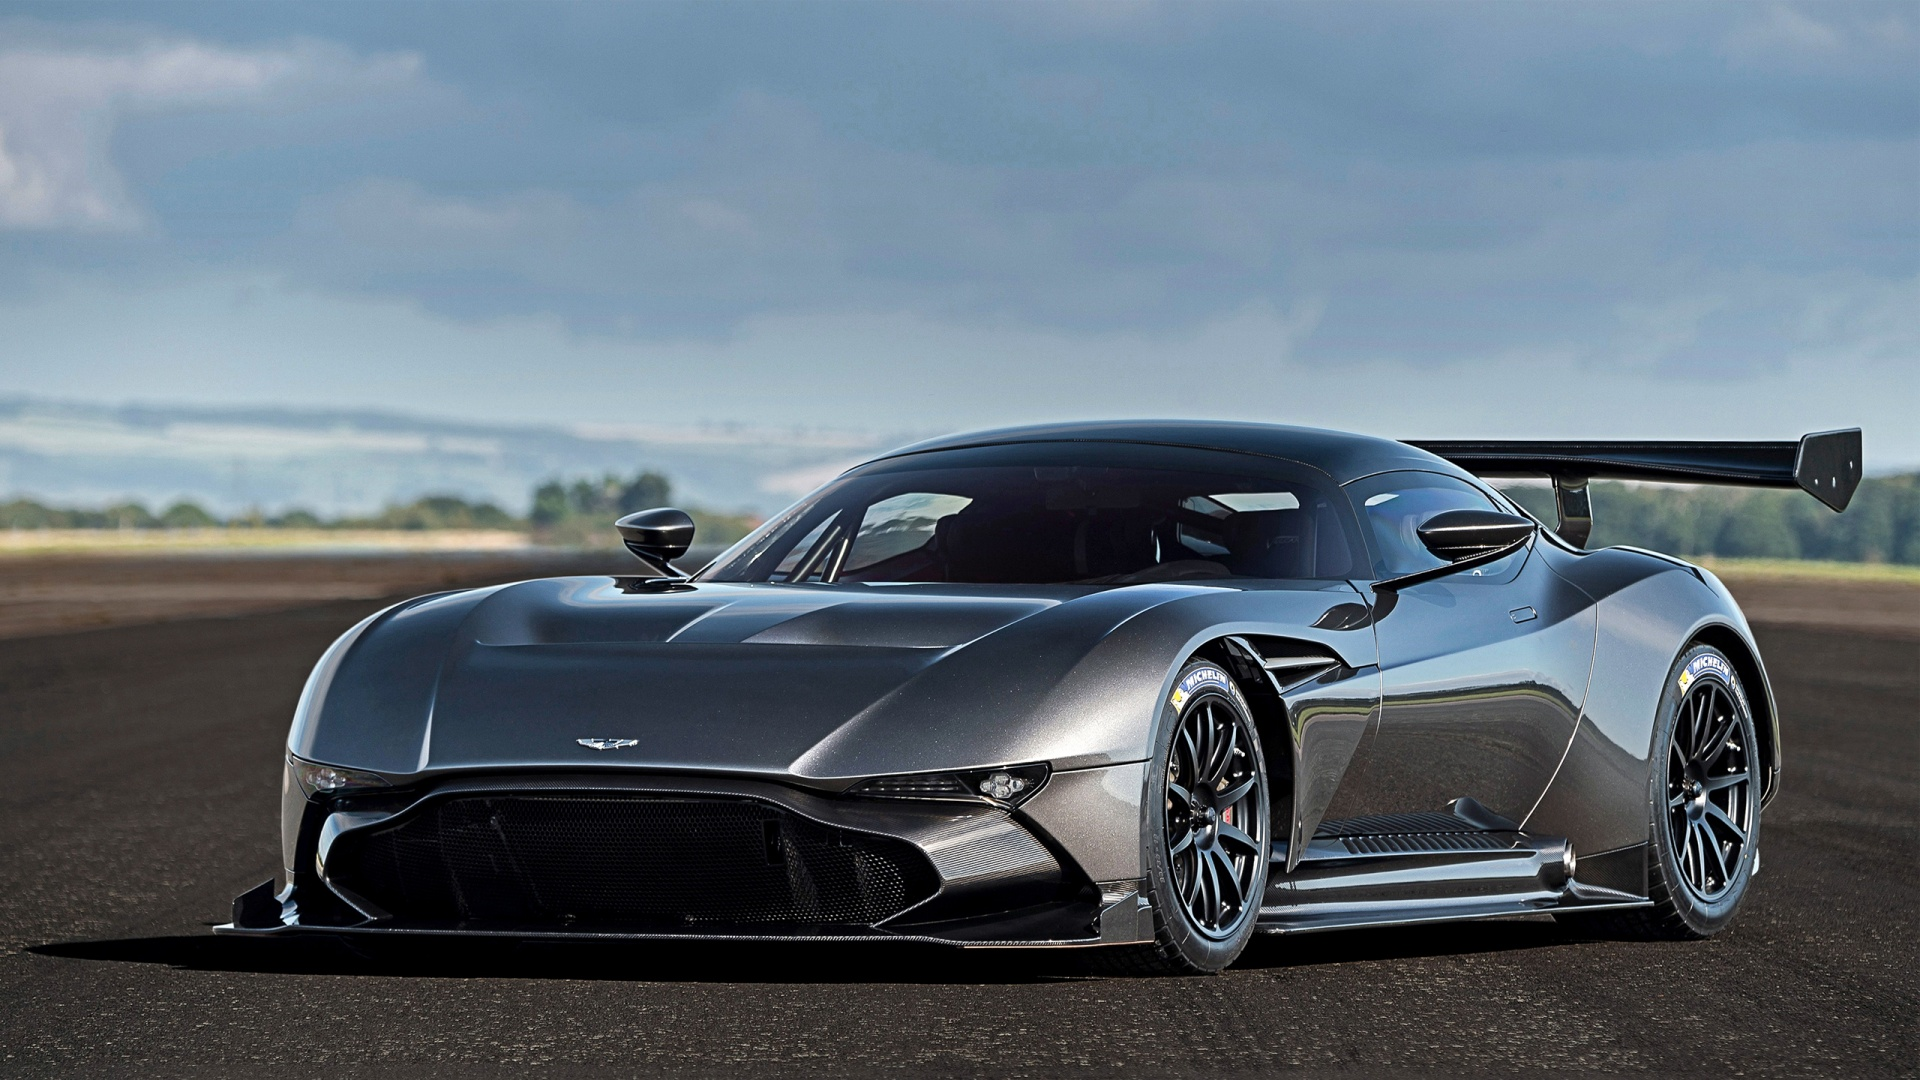 Aston Martin Vulcan 2015 Wallpaper HD Car Wallpapers 1920x1080